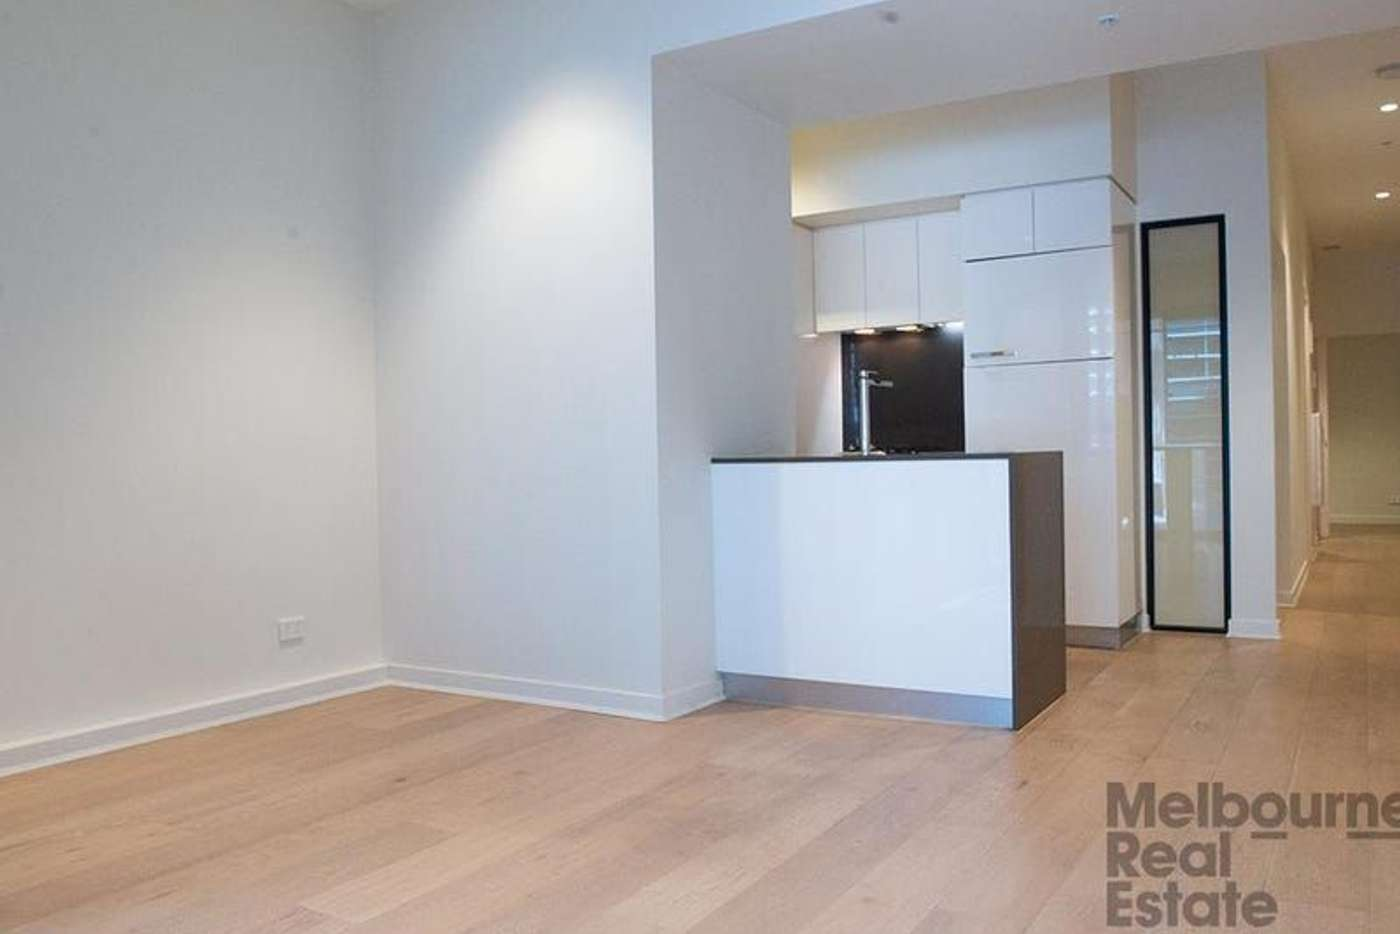 Main view of Homely apartment listing, 503/199 William Street, Melbourne VIC 3000